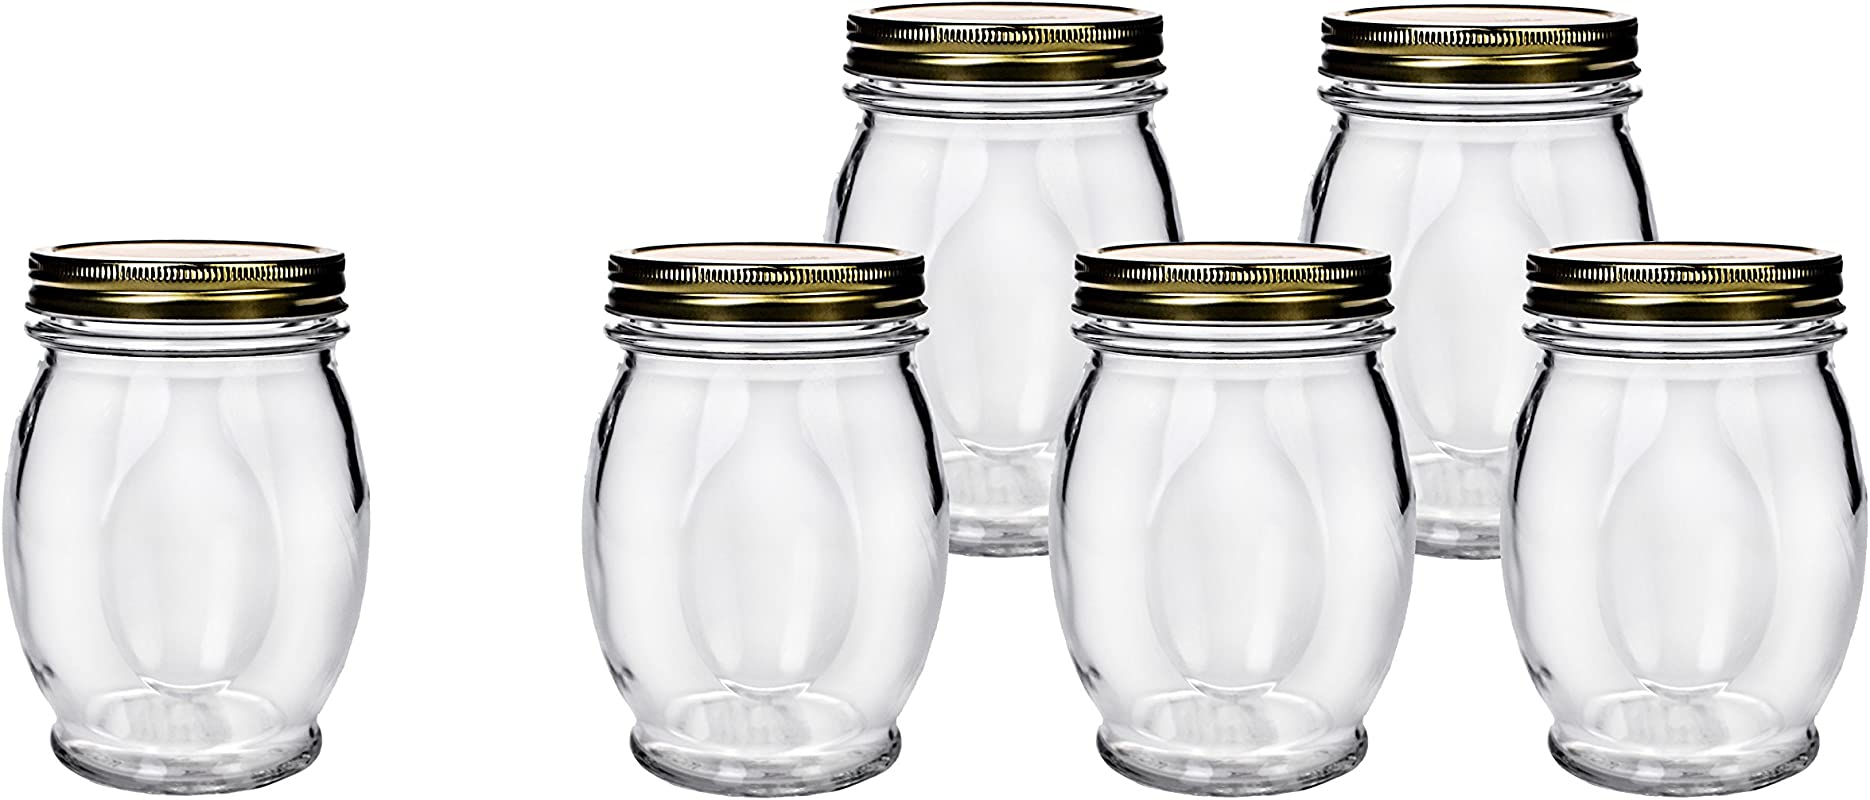 Amici Orto Canning Jars With Lids 27 5 Oz Set Of 6